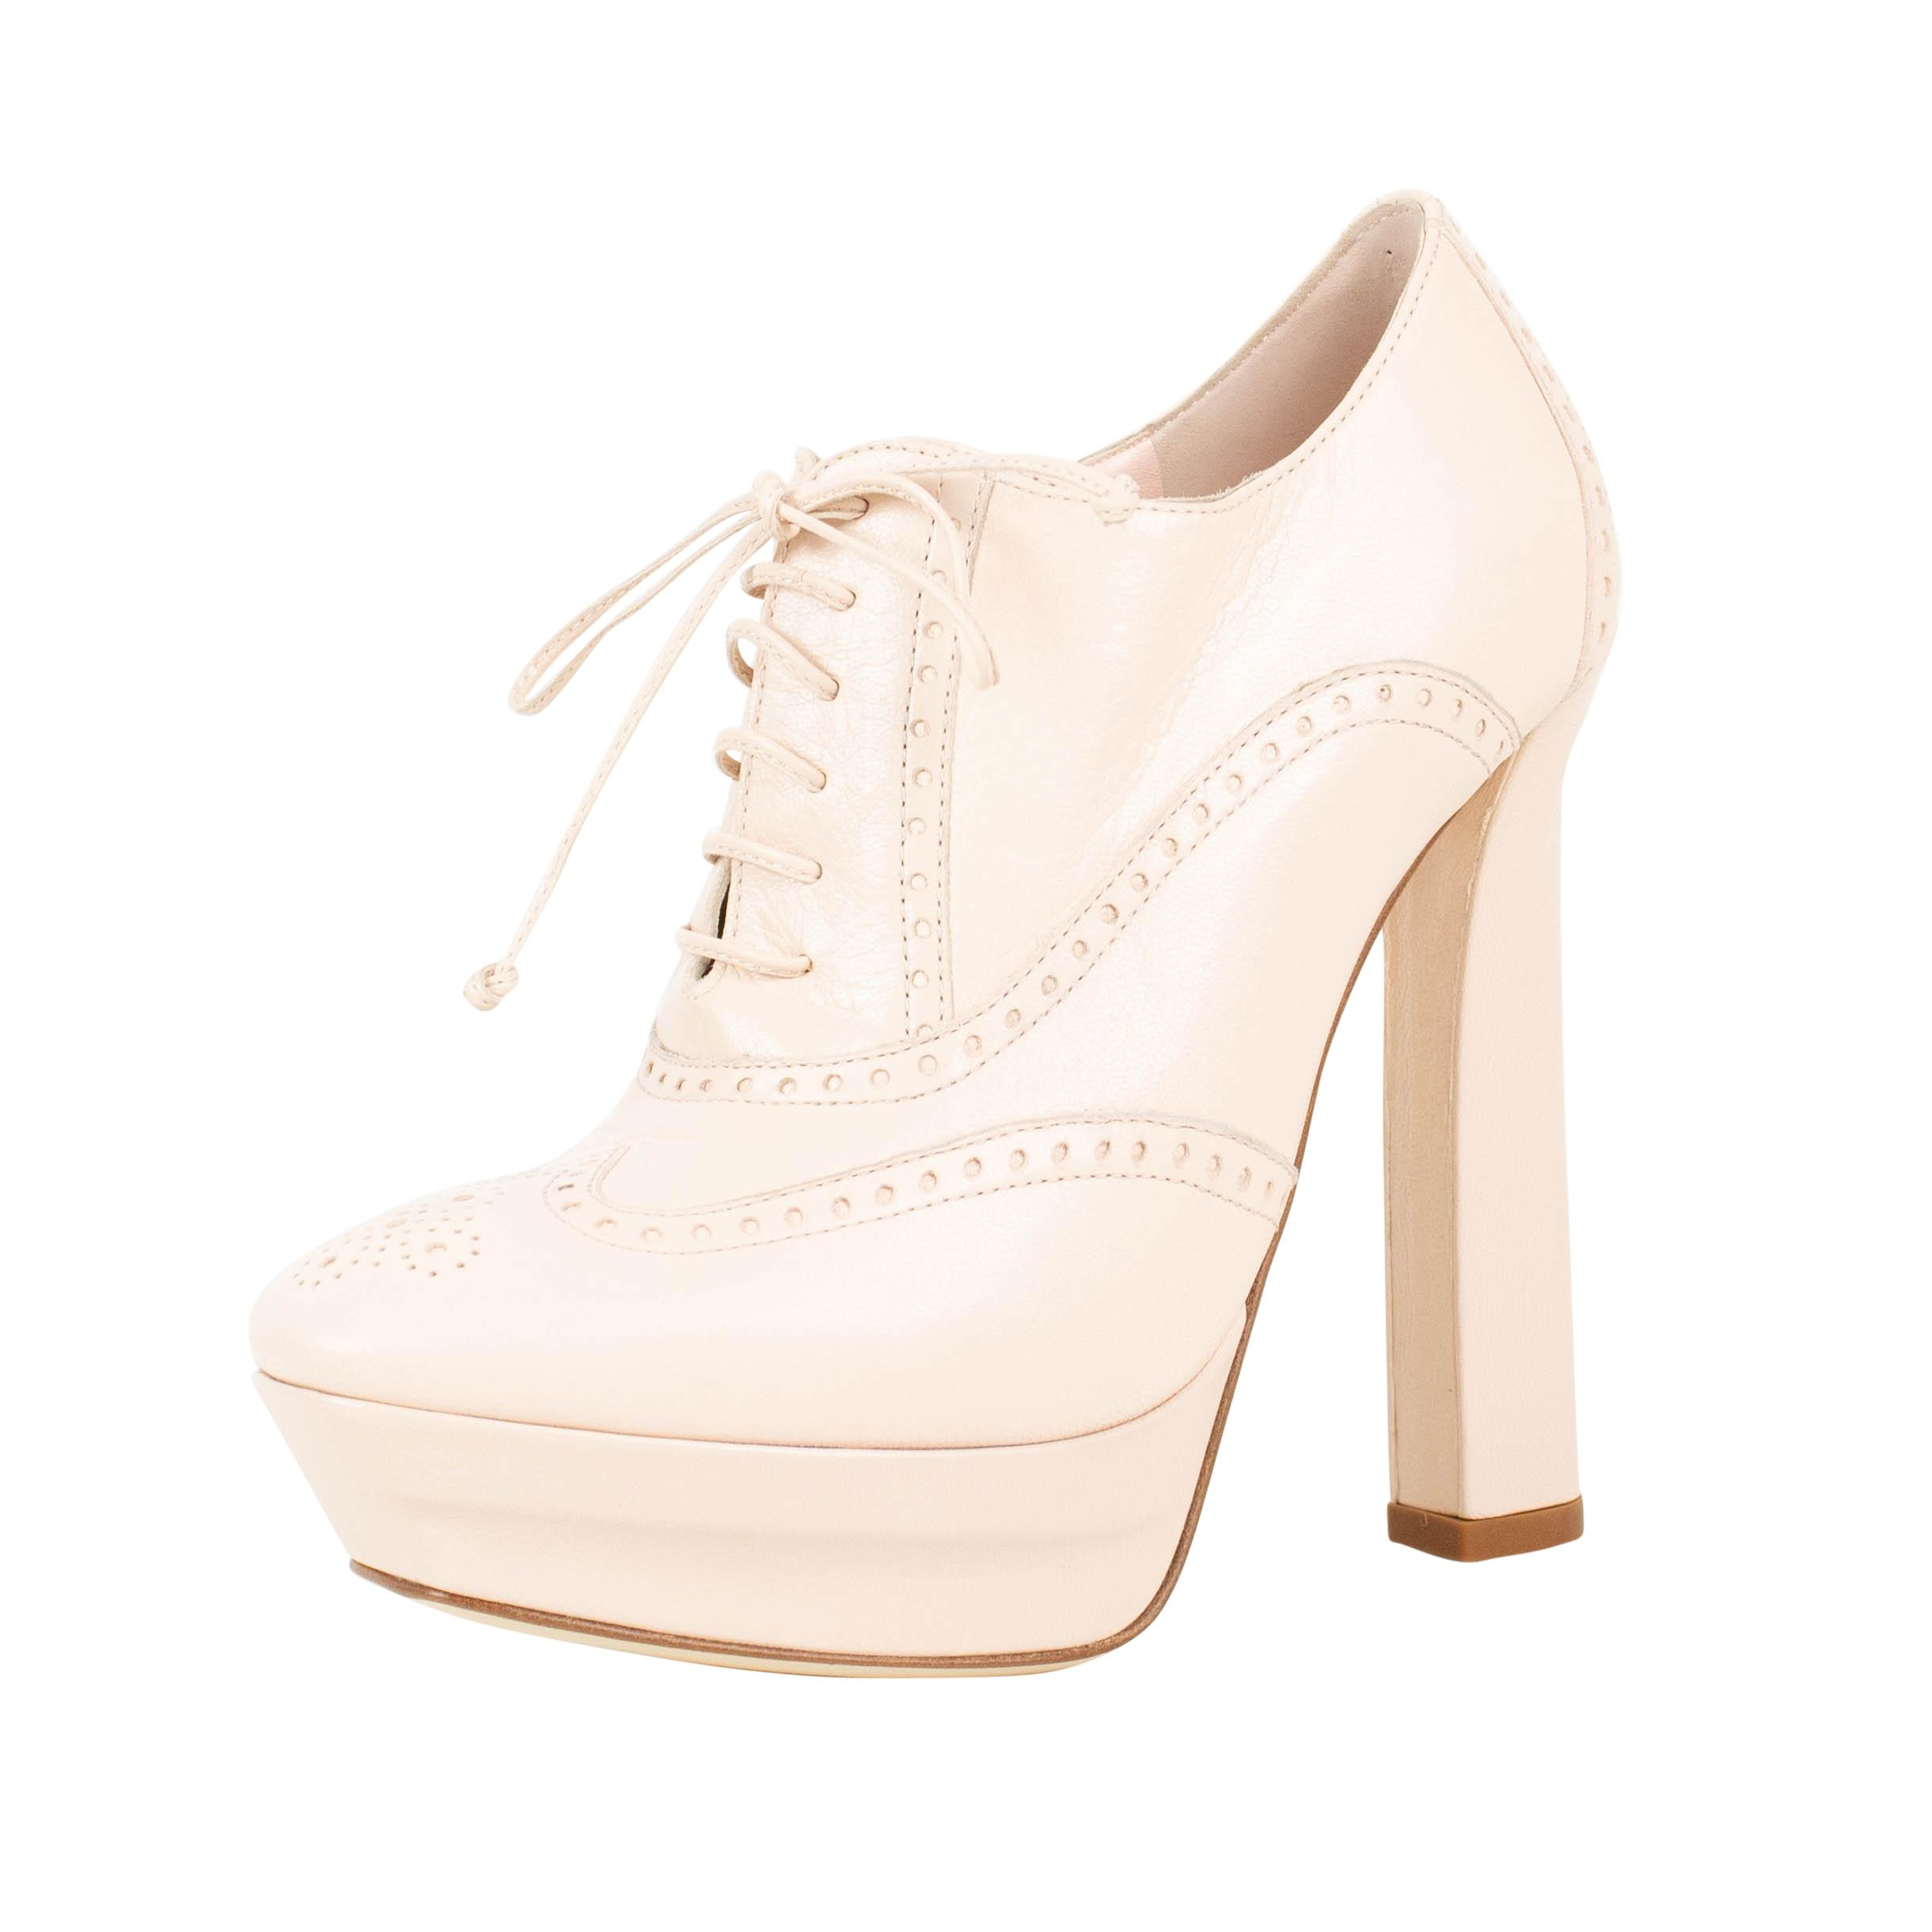 Bottega Veneta Pale Pink Leather Oxford Heels Platforms Size US 6 Regular (M, B)